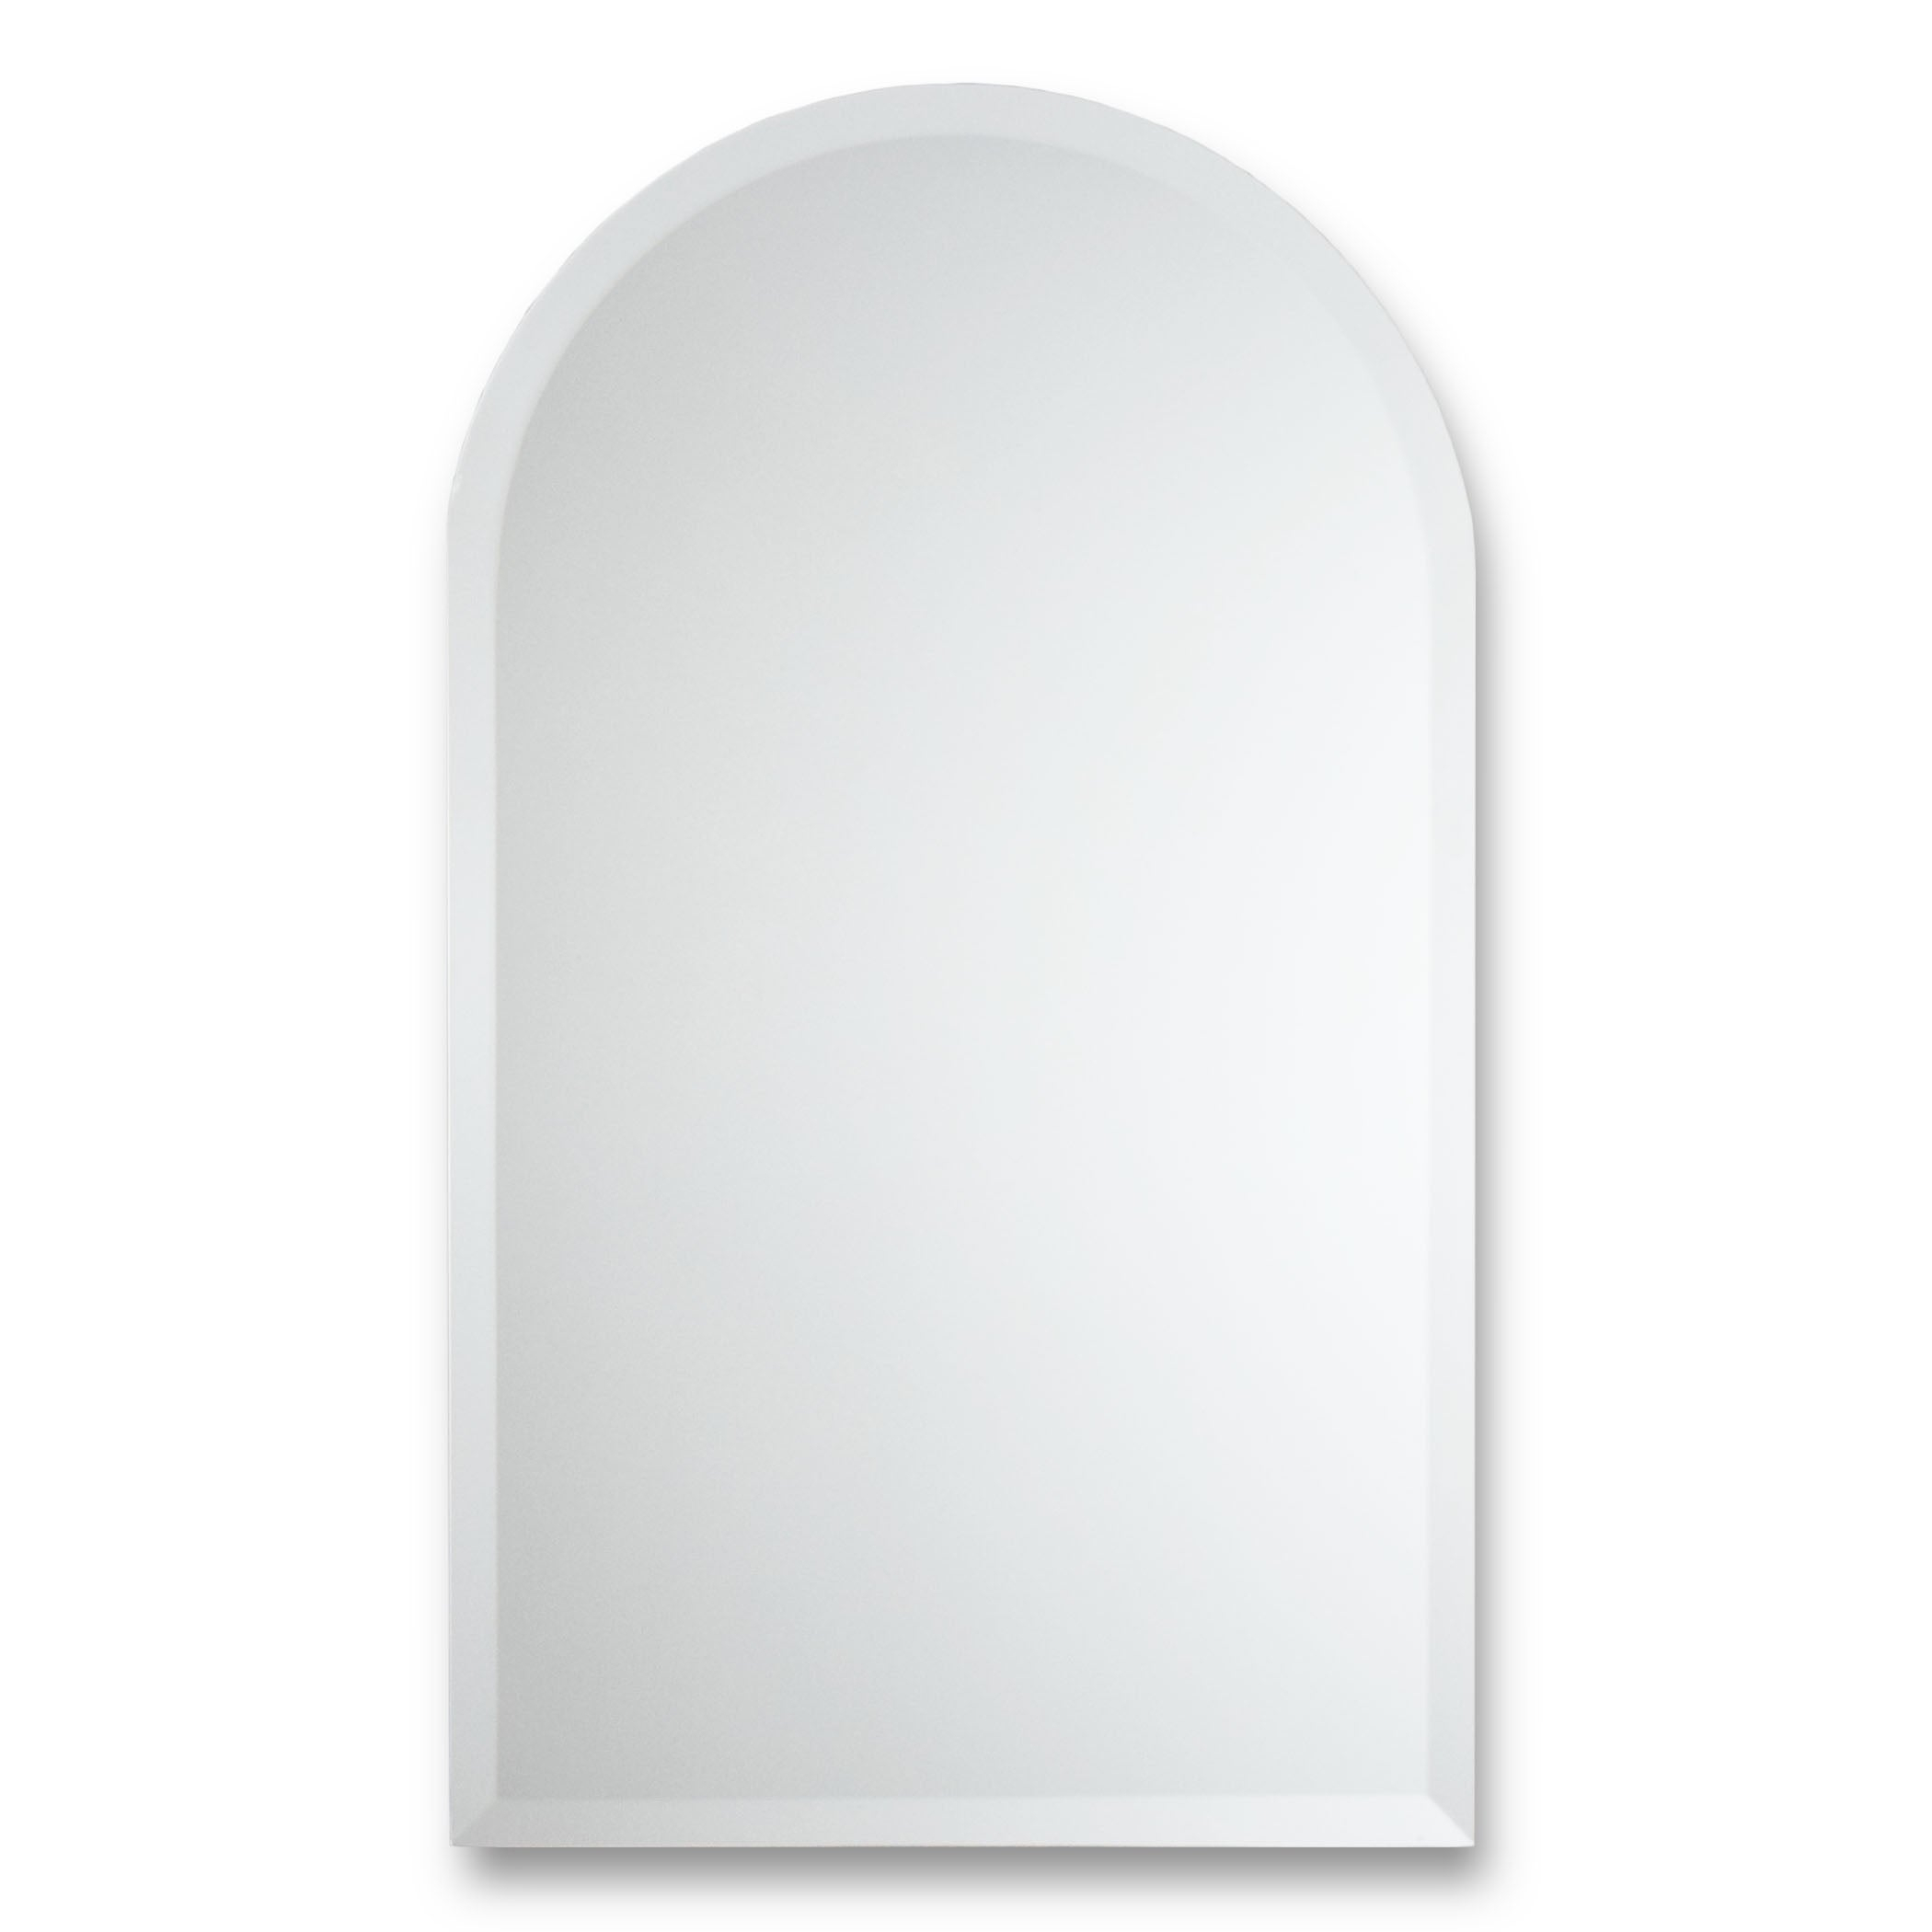 Arch Crowned Top, Wall Mirror | Shop Online At Overstock Within Ekaterina Arch/crowned Top Wall Mirrors (Image 8 of 20)